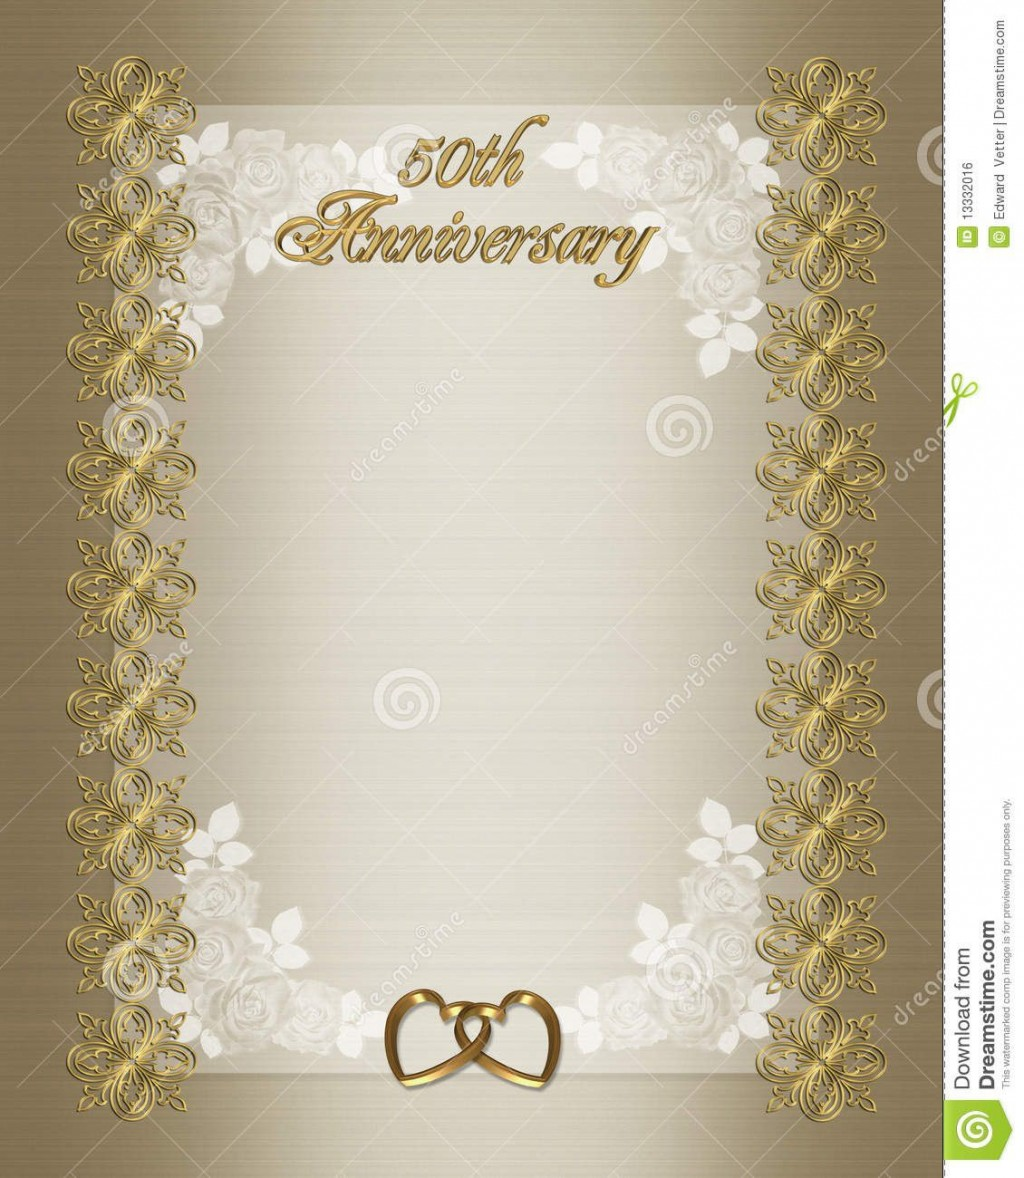 006 Outstanding 50th Anniversary Invitation Template Free Download Highest Quality  Golden WeddingLarge